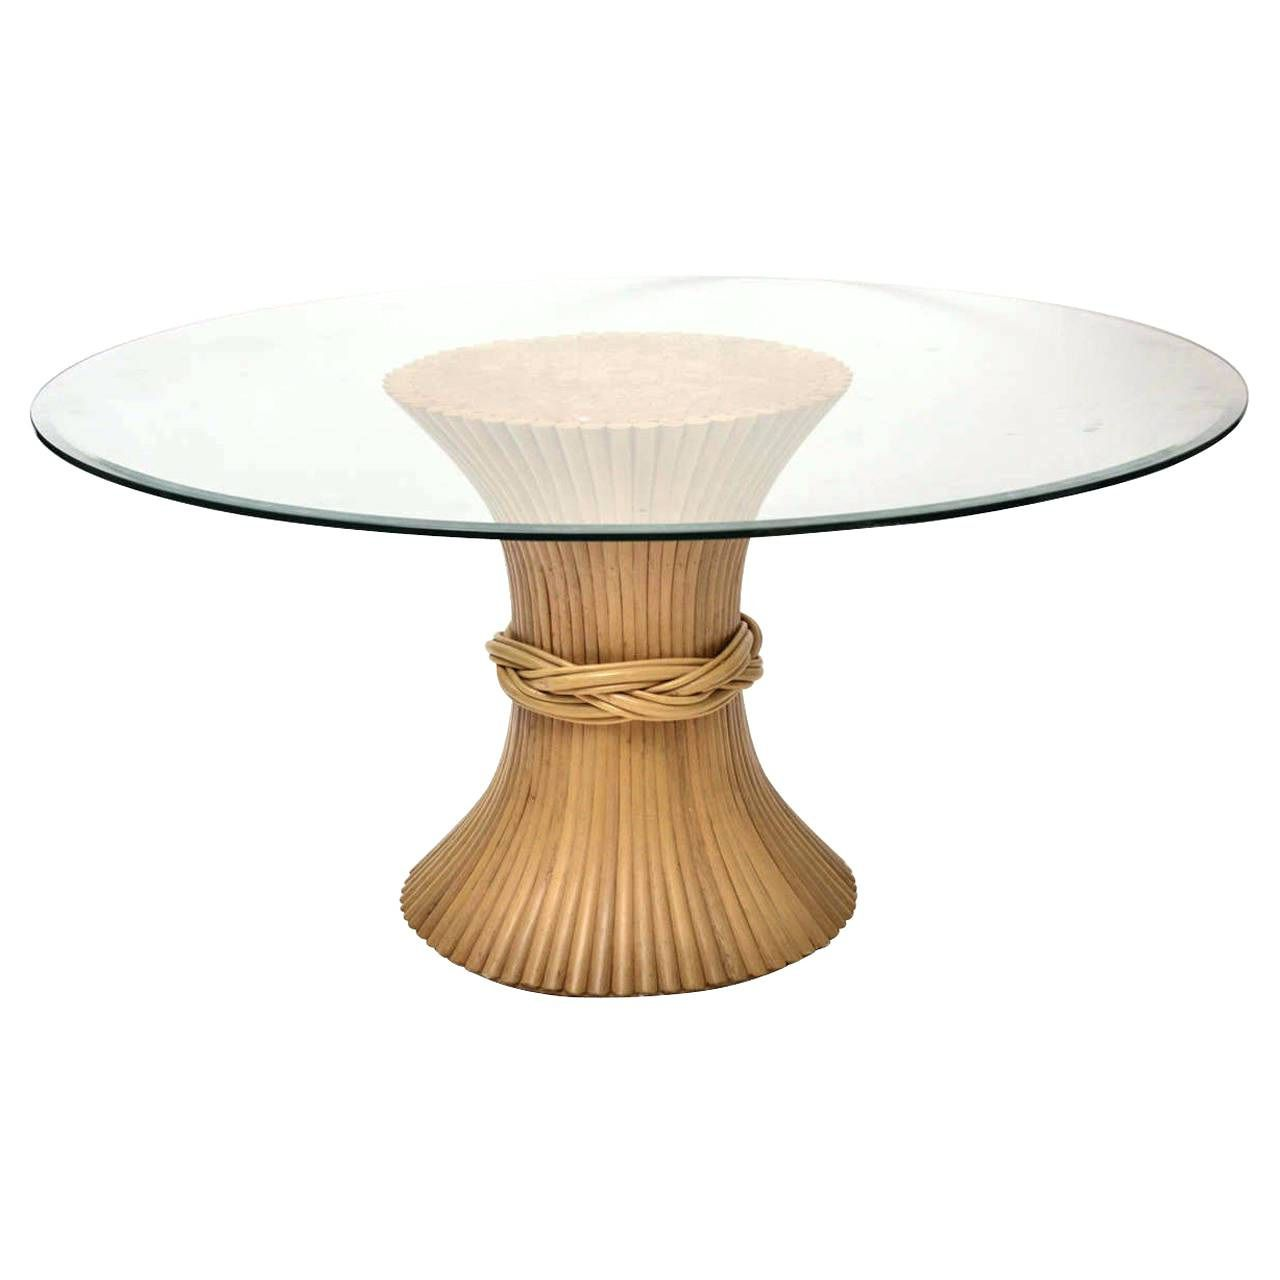 50+ 30 Round Glass Table Top   Modern Furniture Design Check More At Http: